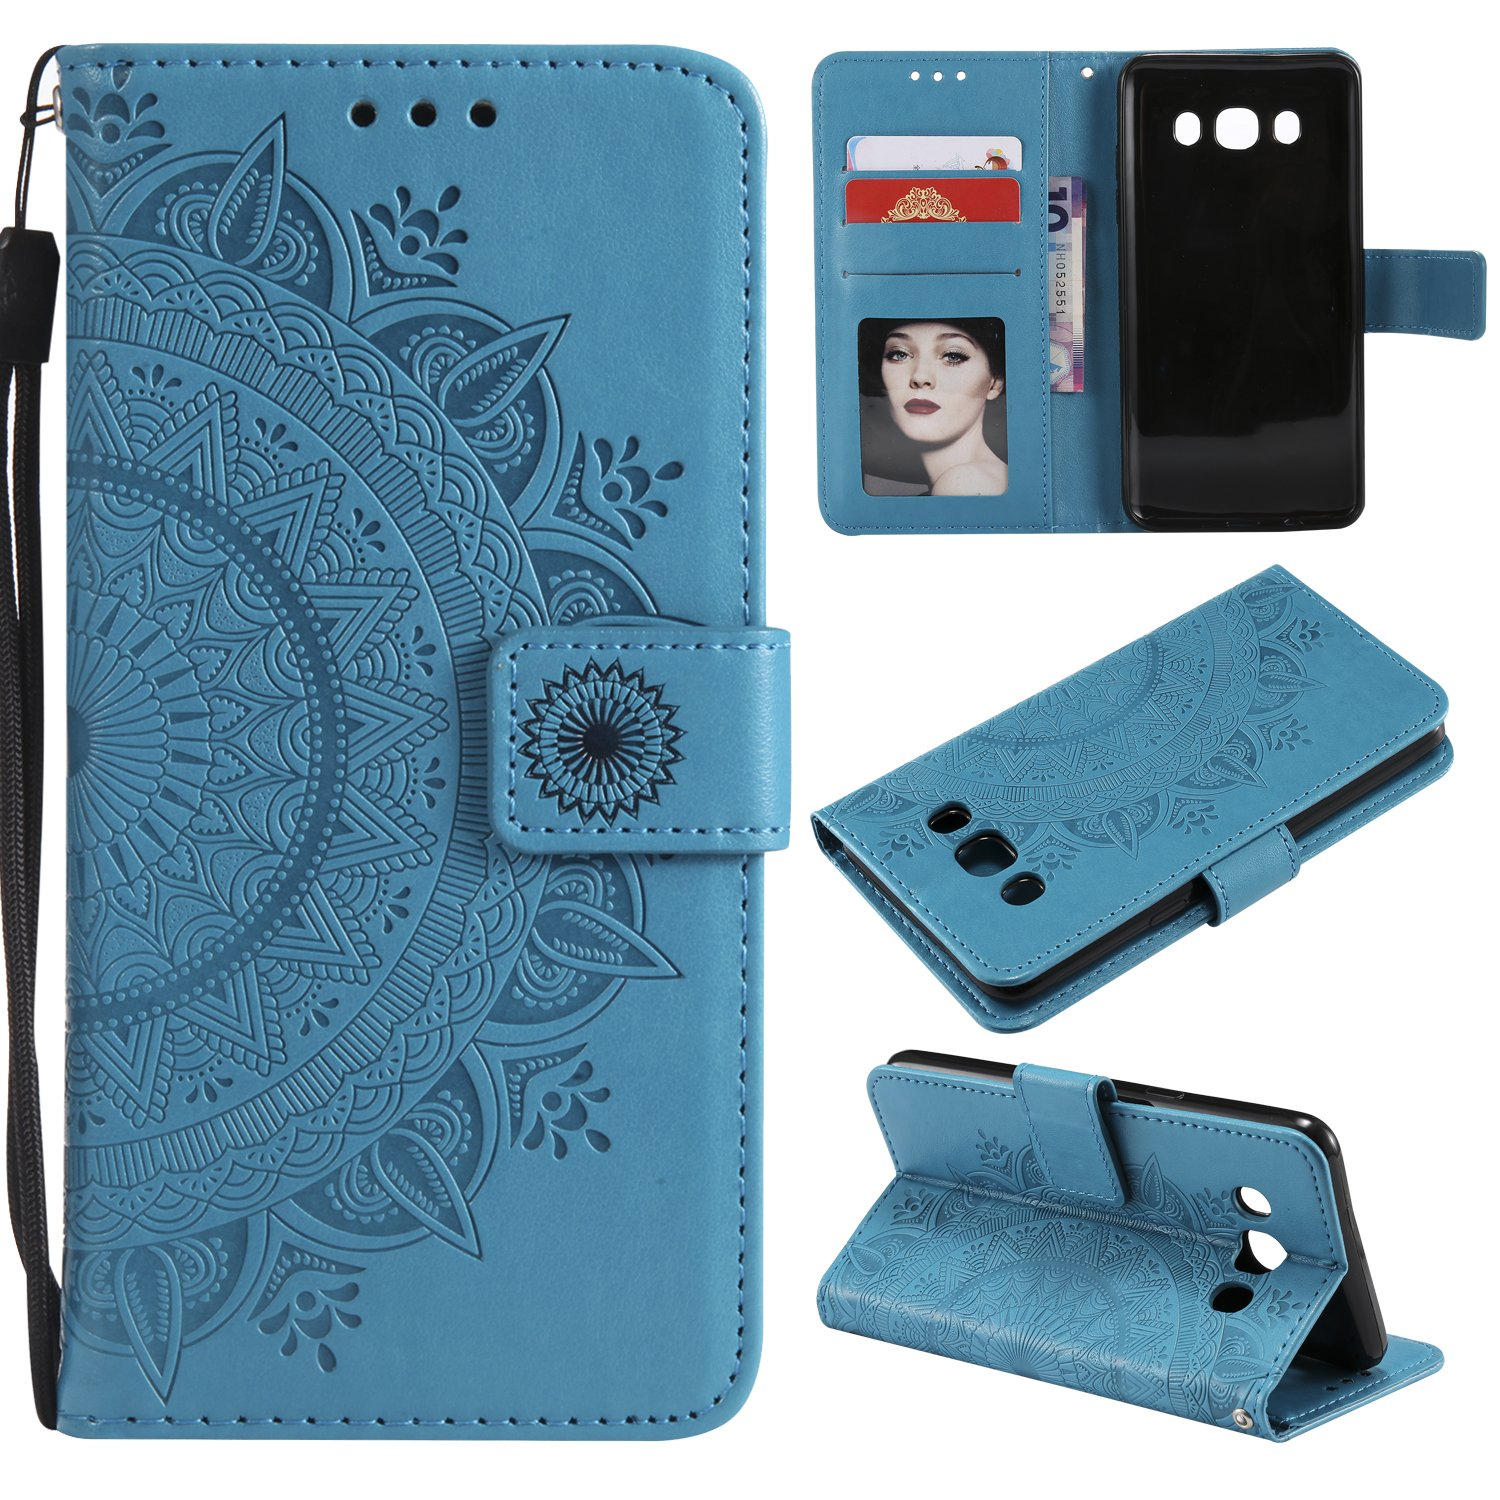 Galaxy J7 2016 Floral Wallet Case,Galaxy J7 2016 Strap Flip Case,Leecase Embossed Totem Flower Design Pu Leather Bookstyle Stand Flip Case for Samsung Galaxy J7 2016-Blue